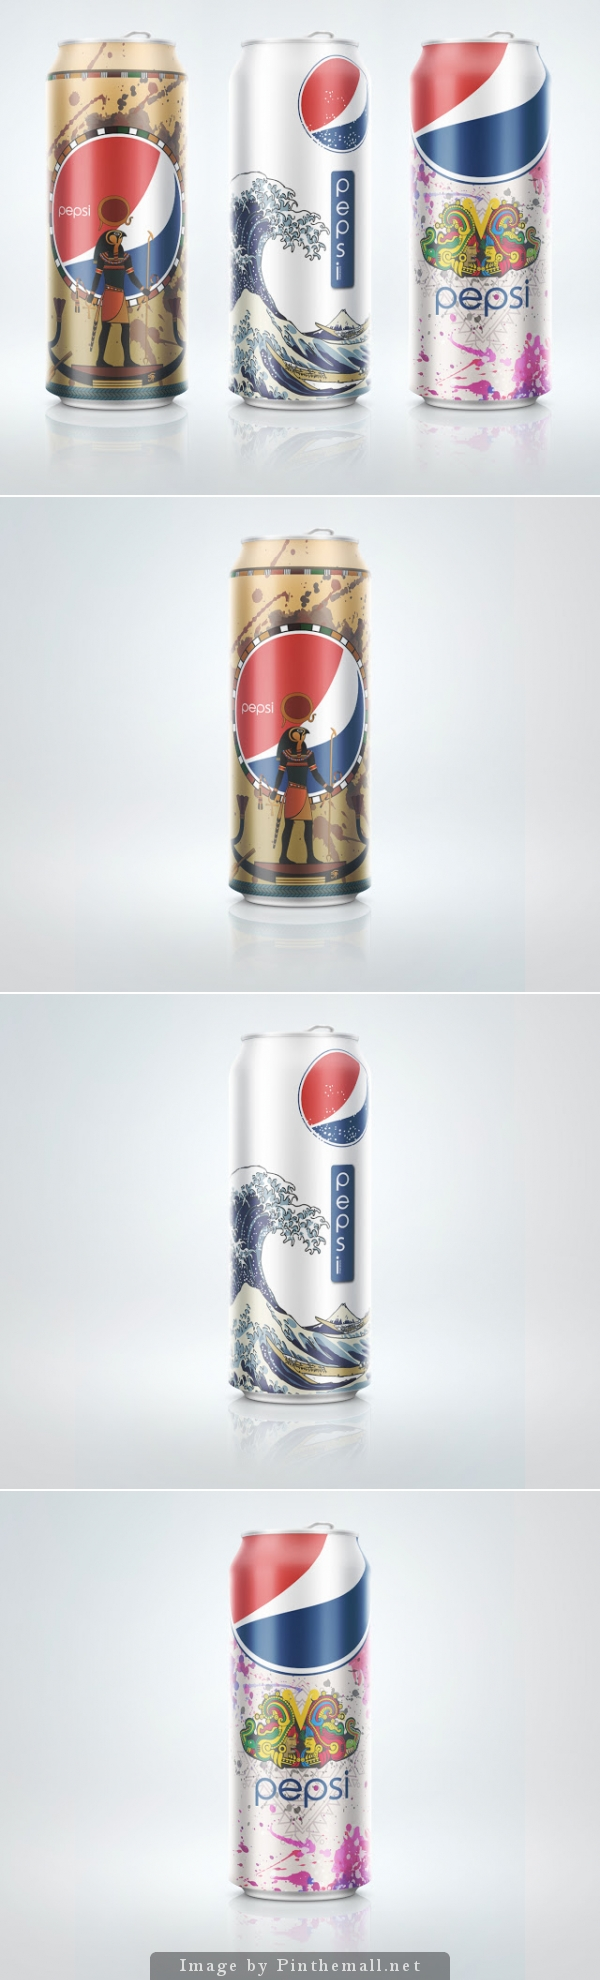 #Pepsi Can by Nguyen HaiDuong (Concept) - http://www.packagingoftheworld.com/2014/11/pepsi-can-concept.html